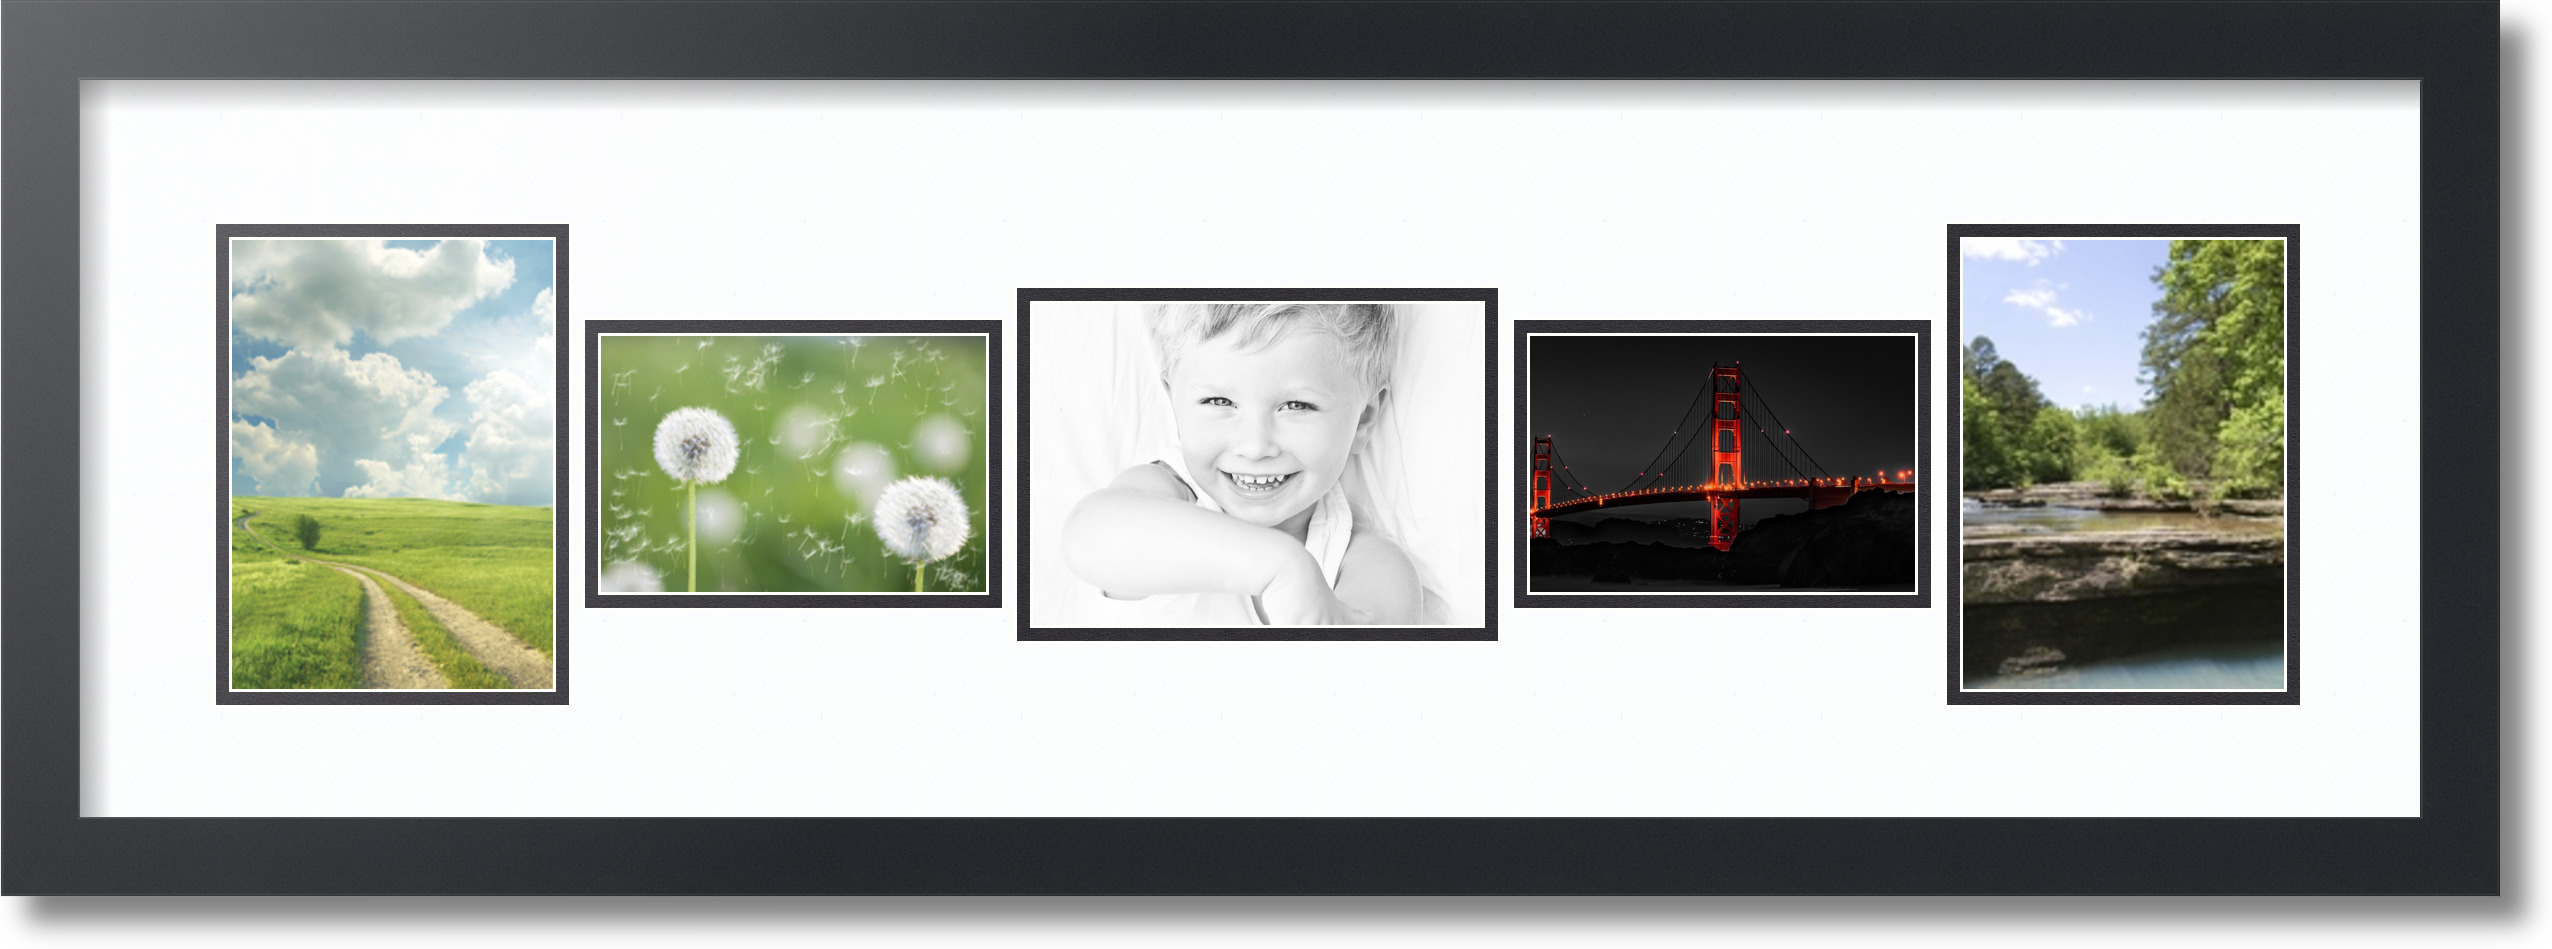 arttoframes collage frame with 5 openings 5x7 6x4 7x5 ebay. Black Bedroom Furniture Sets. Home Design Ideas